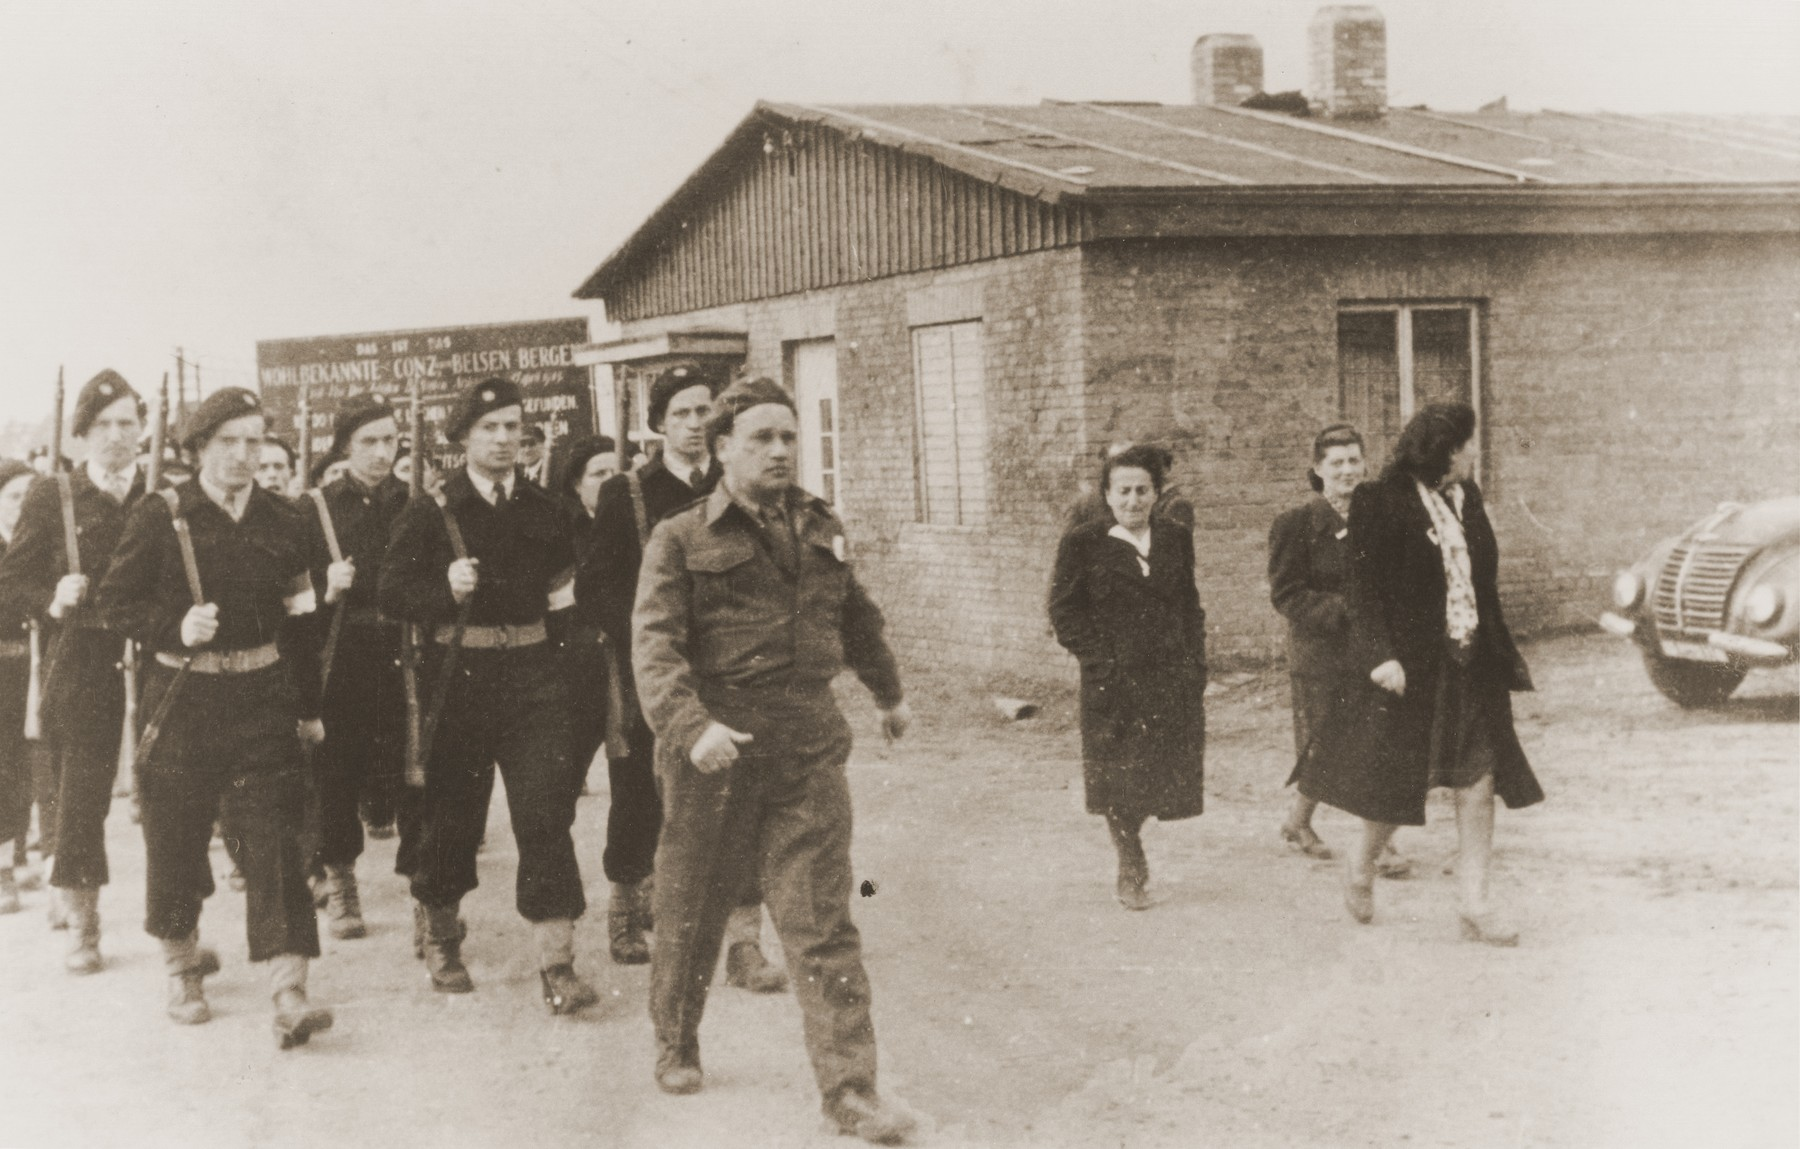 Jewish police parade through the Bergen-Belsen DP camp.  Nandor Aron is fourth from the left and Bundy Weiss is on the far left.